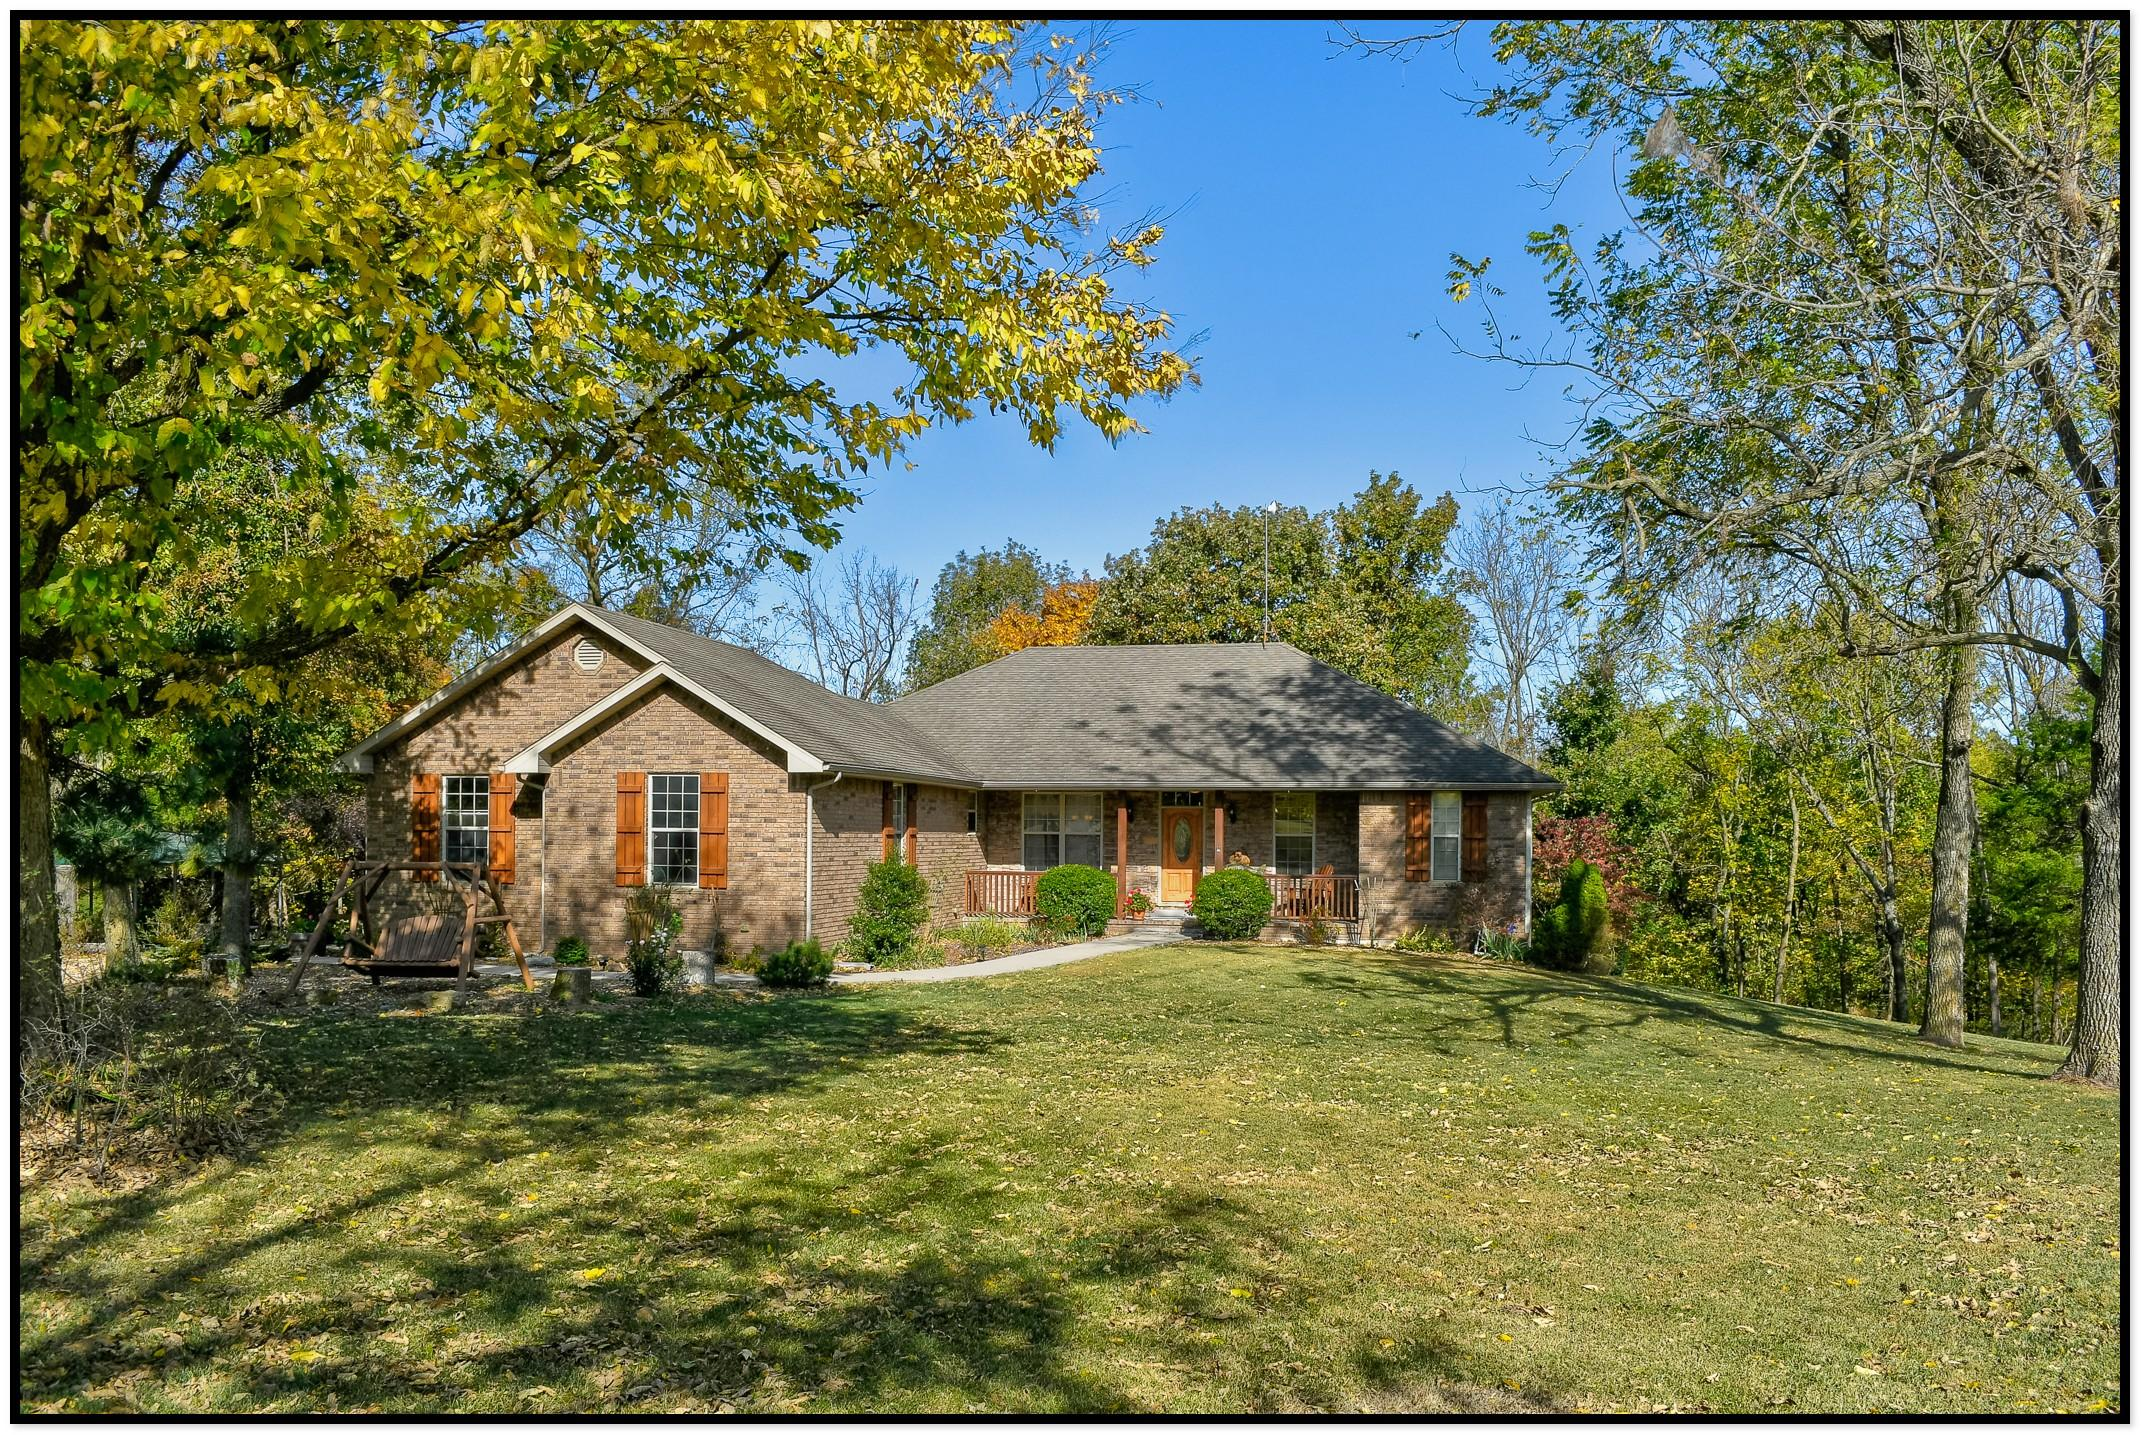 4384 West Routh Lane Willard, MO 65781